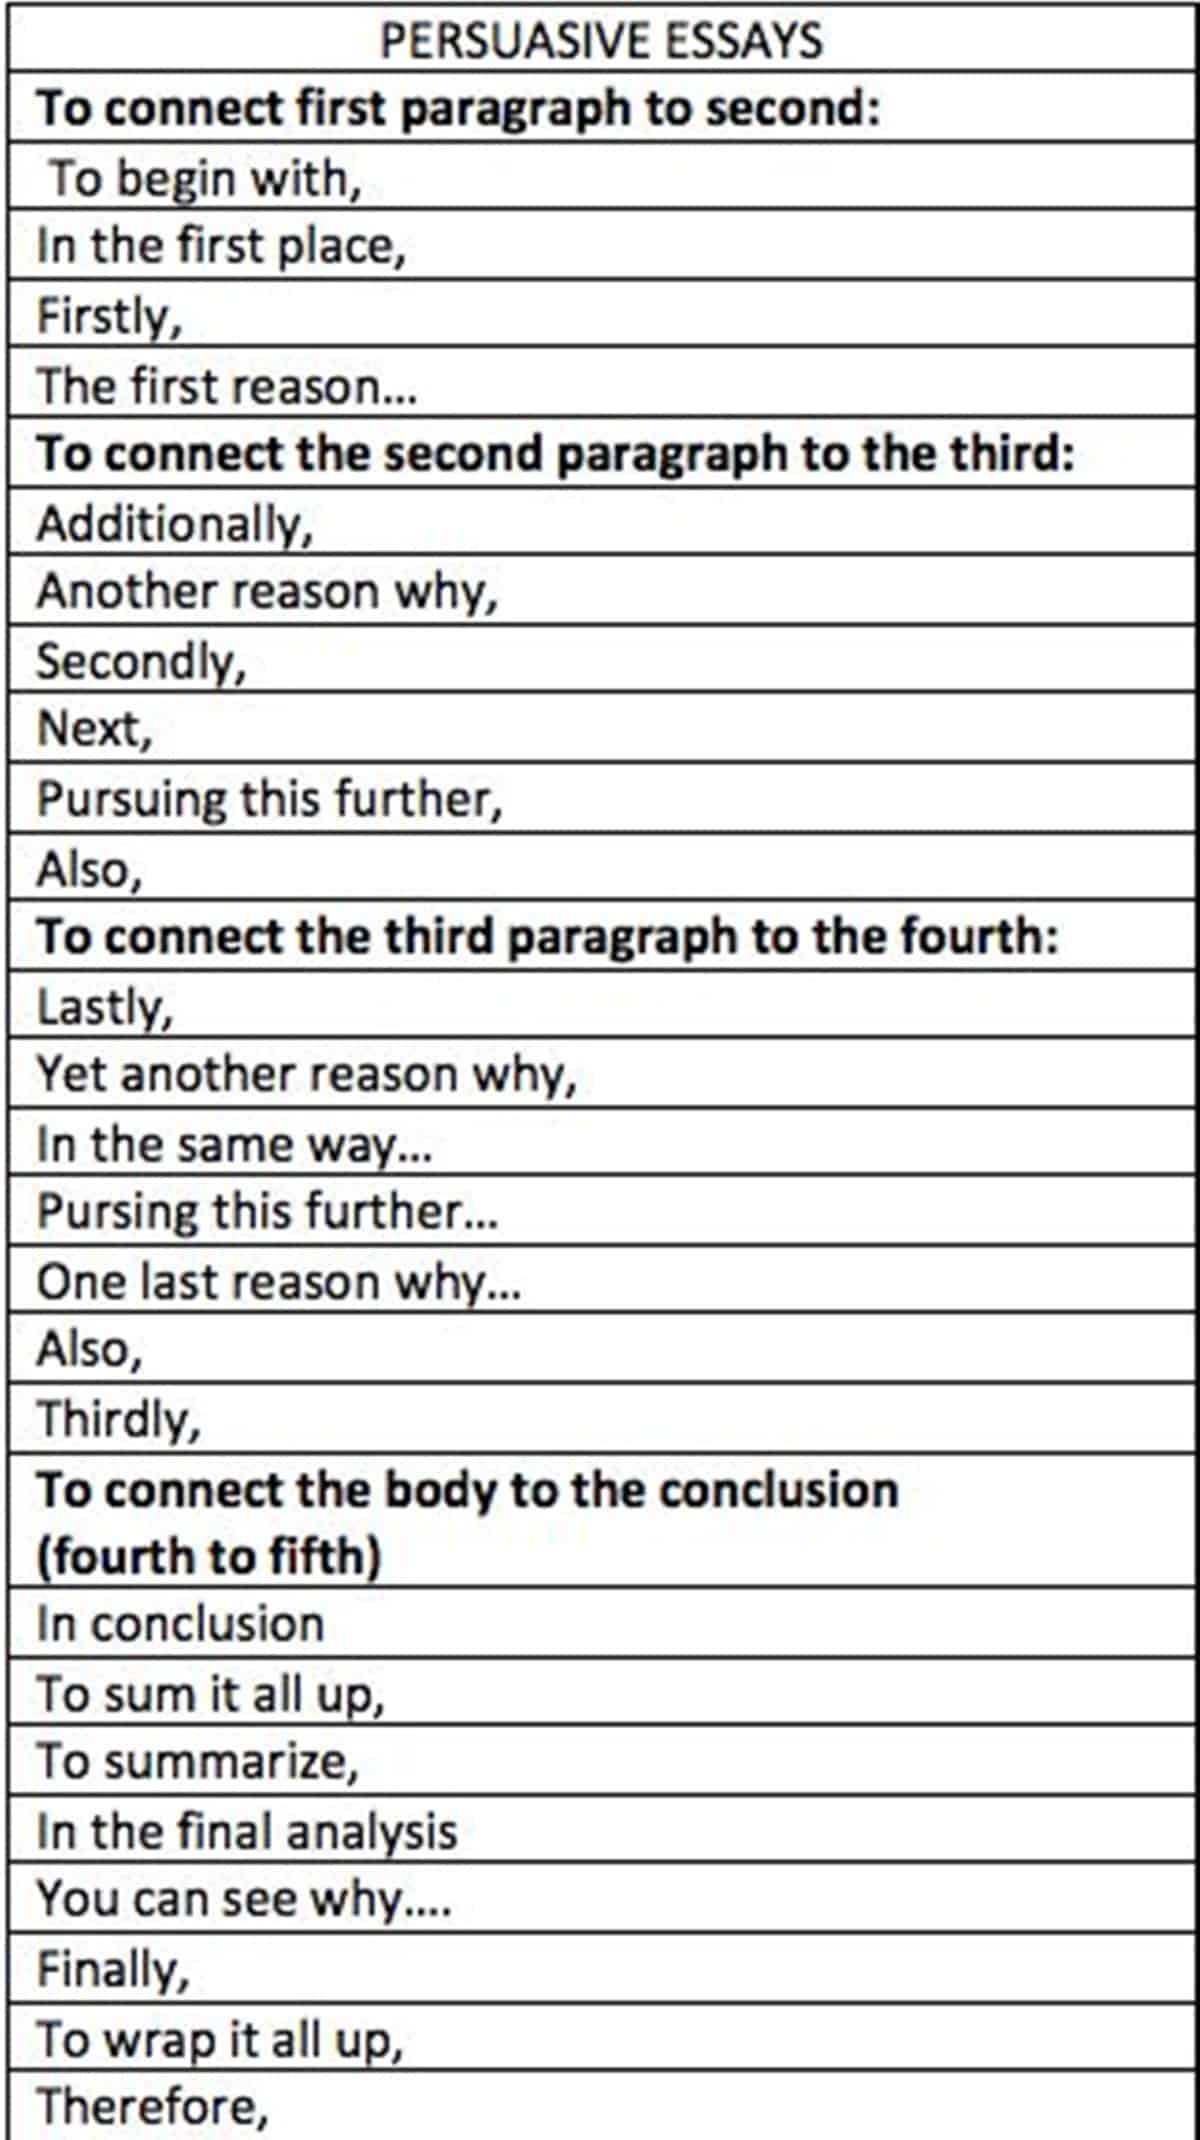 Writing essay helpful phrases